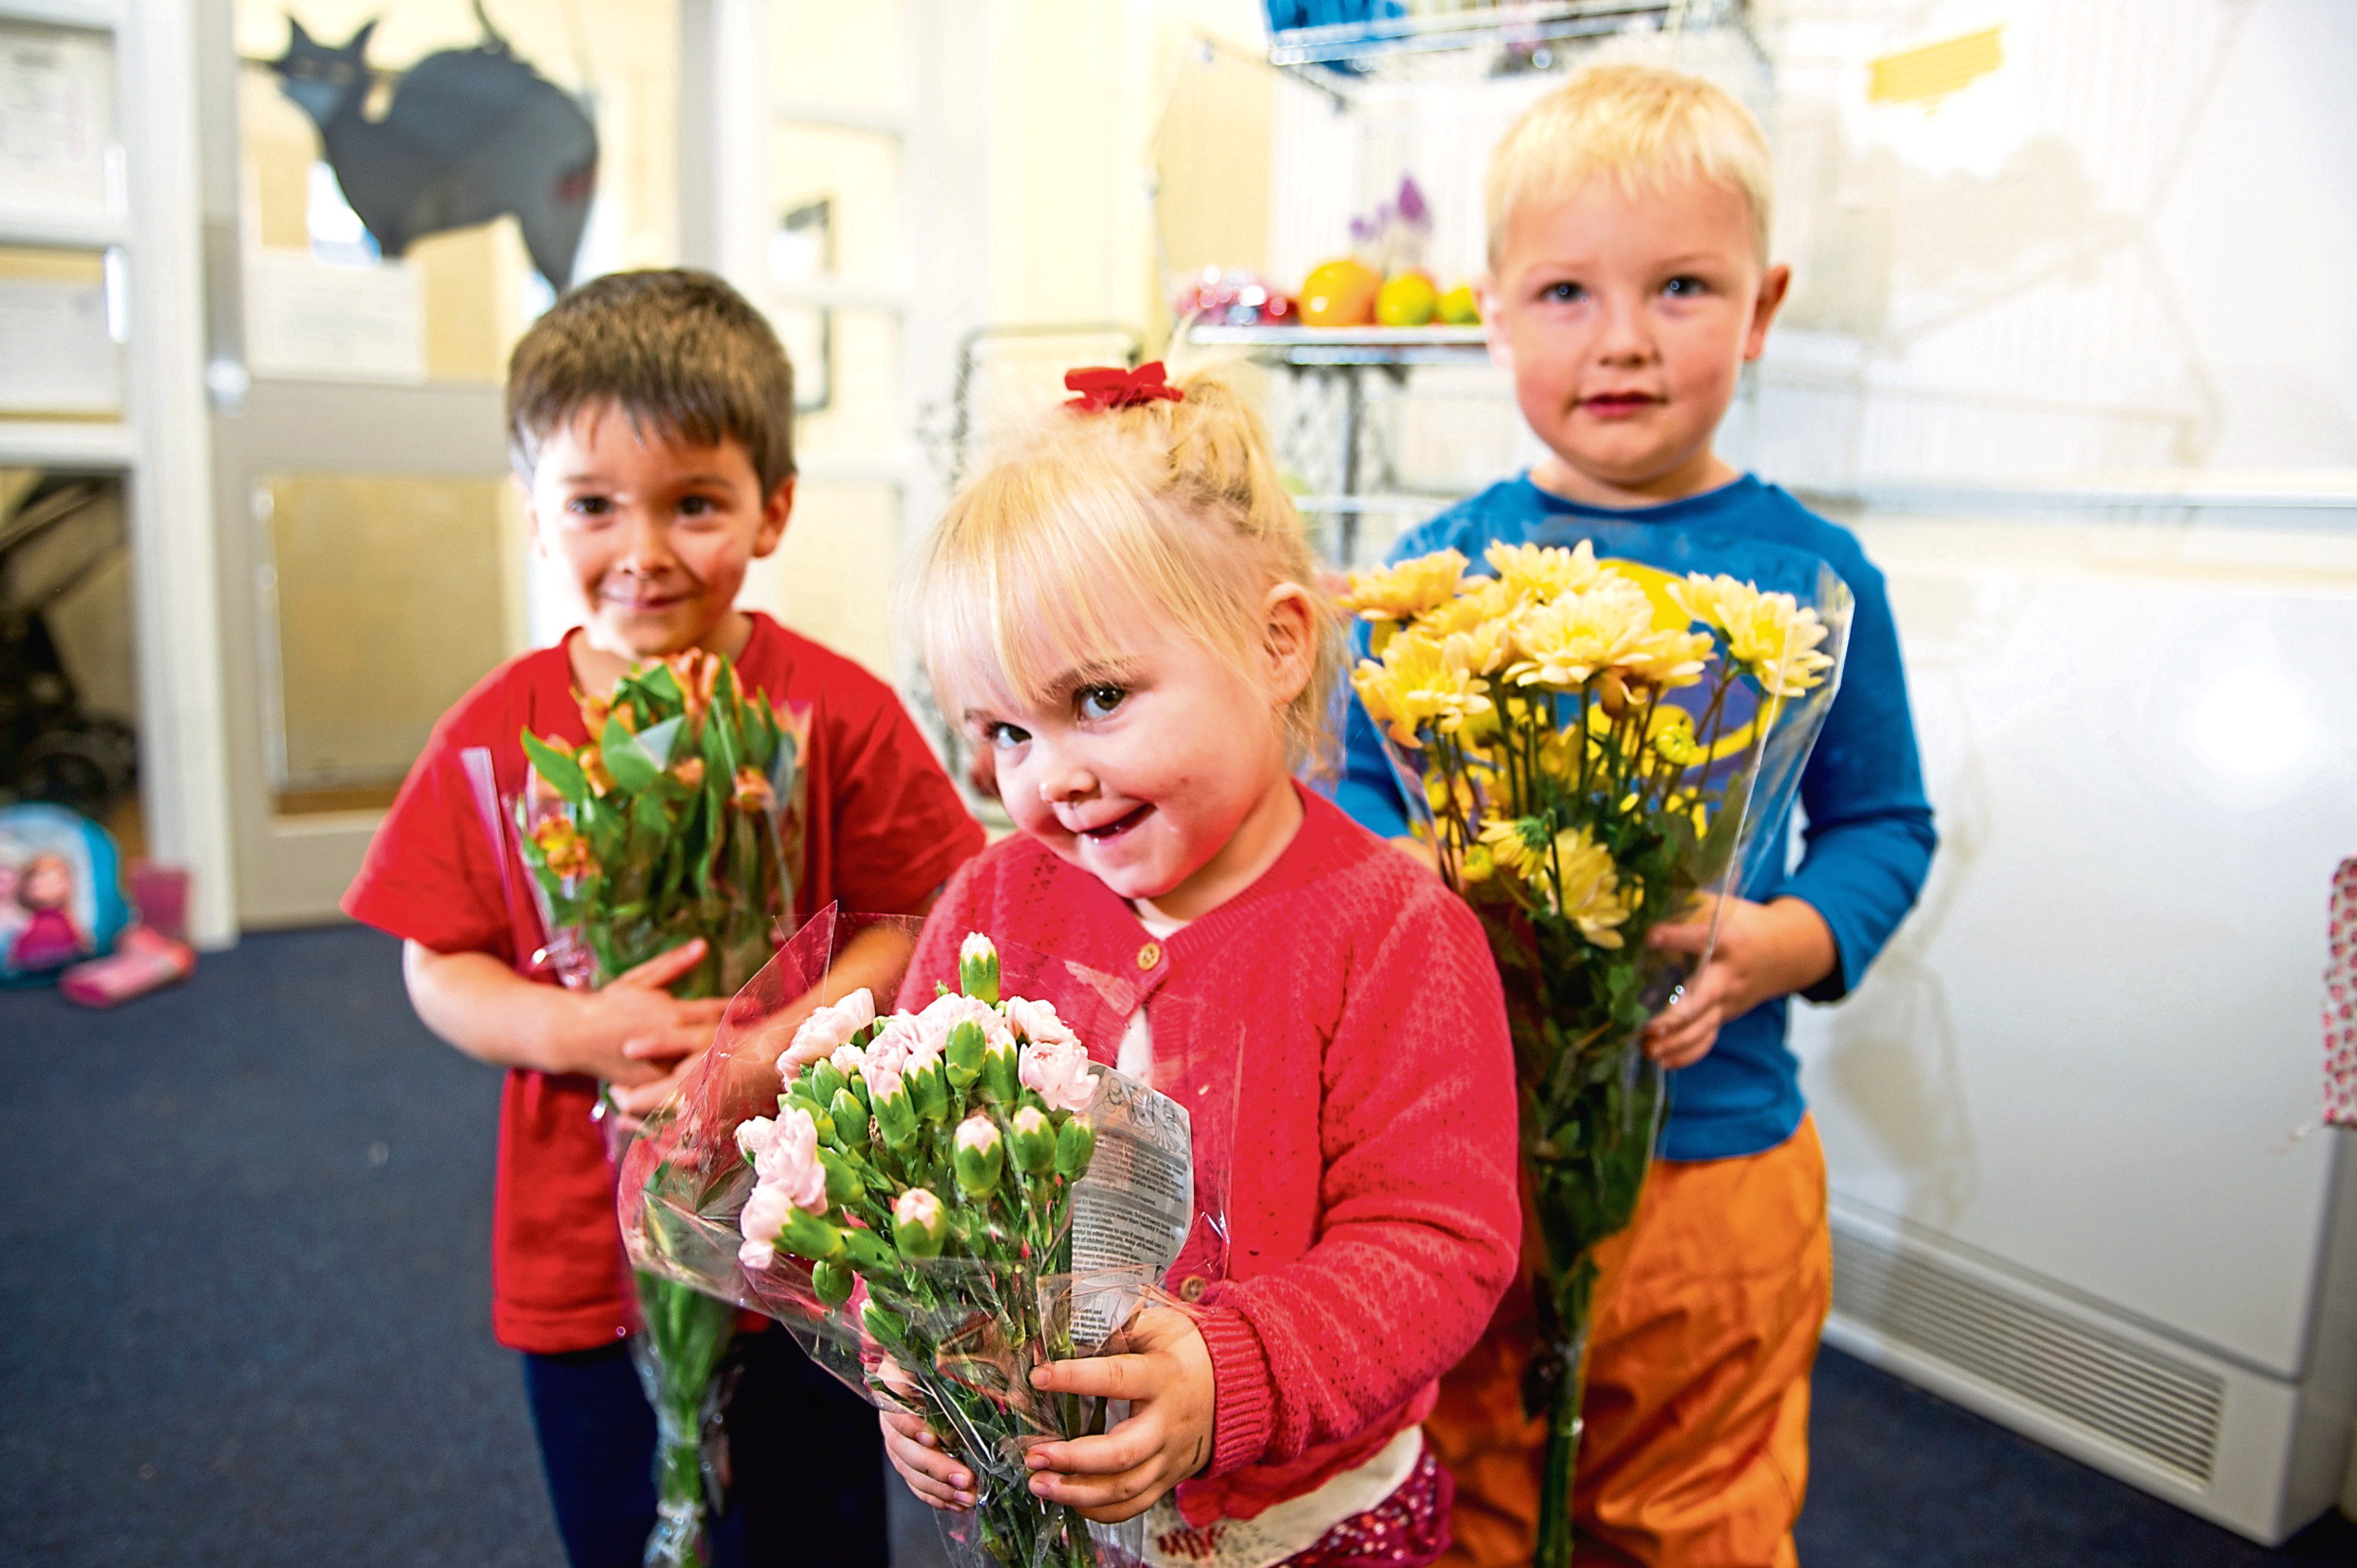 Three of the children at the playgroup with some of the bouquets that they have been leaving anonymously on doorsteps.